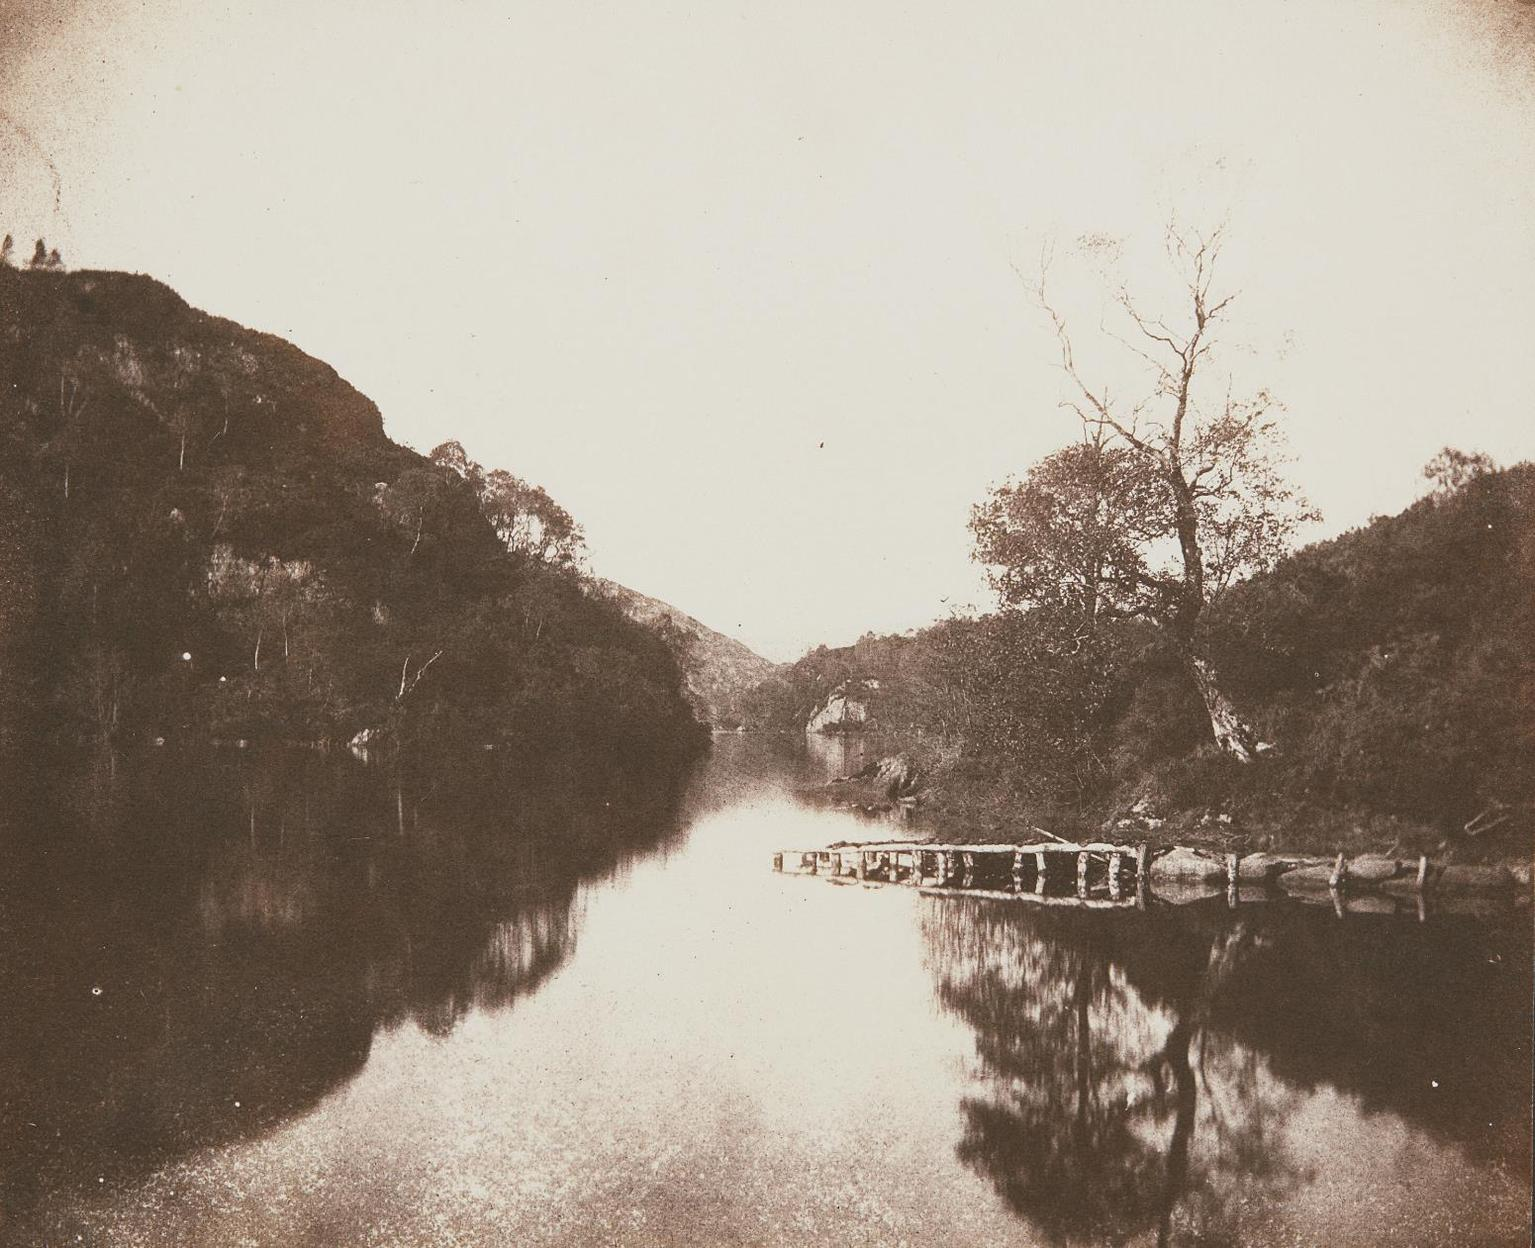 William Henry Fox Talbot-Loch Katrine Pier, Scene Of The Lady Of The Lake-1844